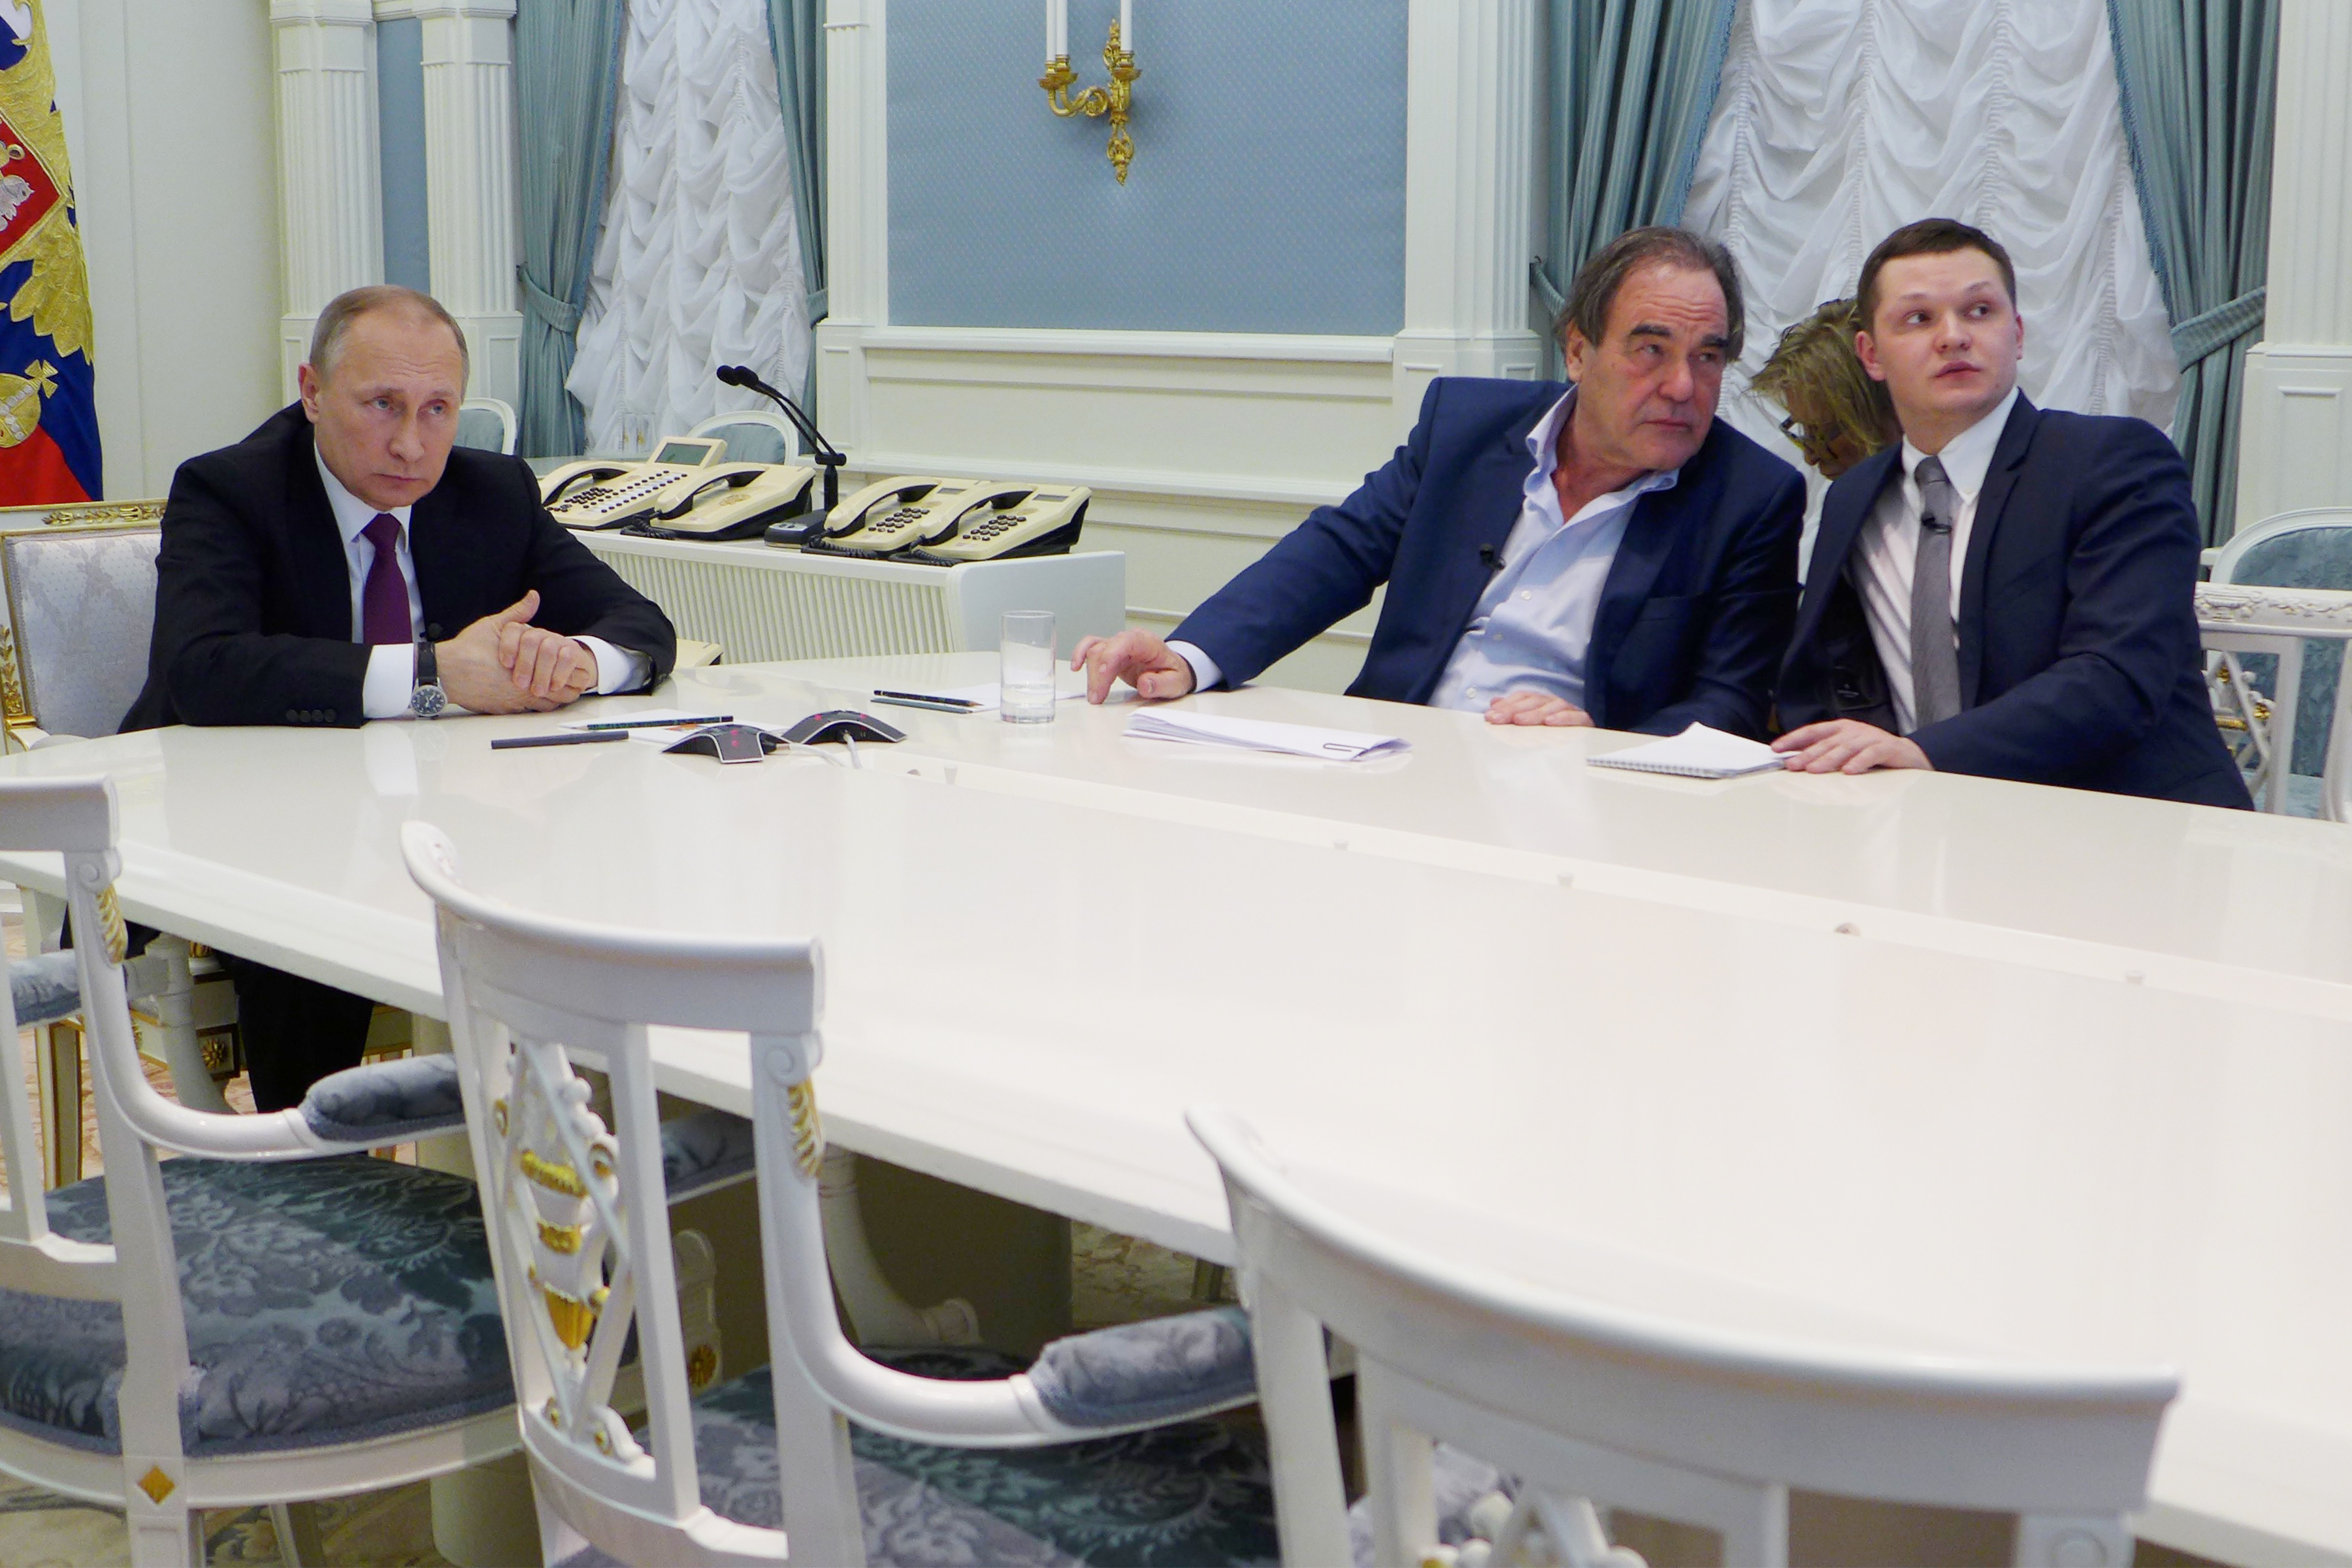 A still from the Showtime documentary THE PUTIN INTERVIEWS. - Photo: Komandir/Courtesy of SHOWTIME Pictured: Russian President Vladimir Putin, Oliver Stone, interpreter Sergei Chudinov.